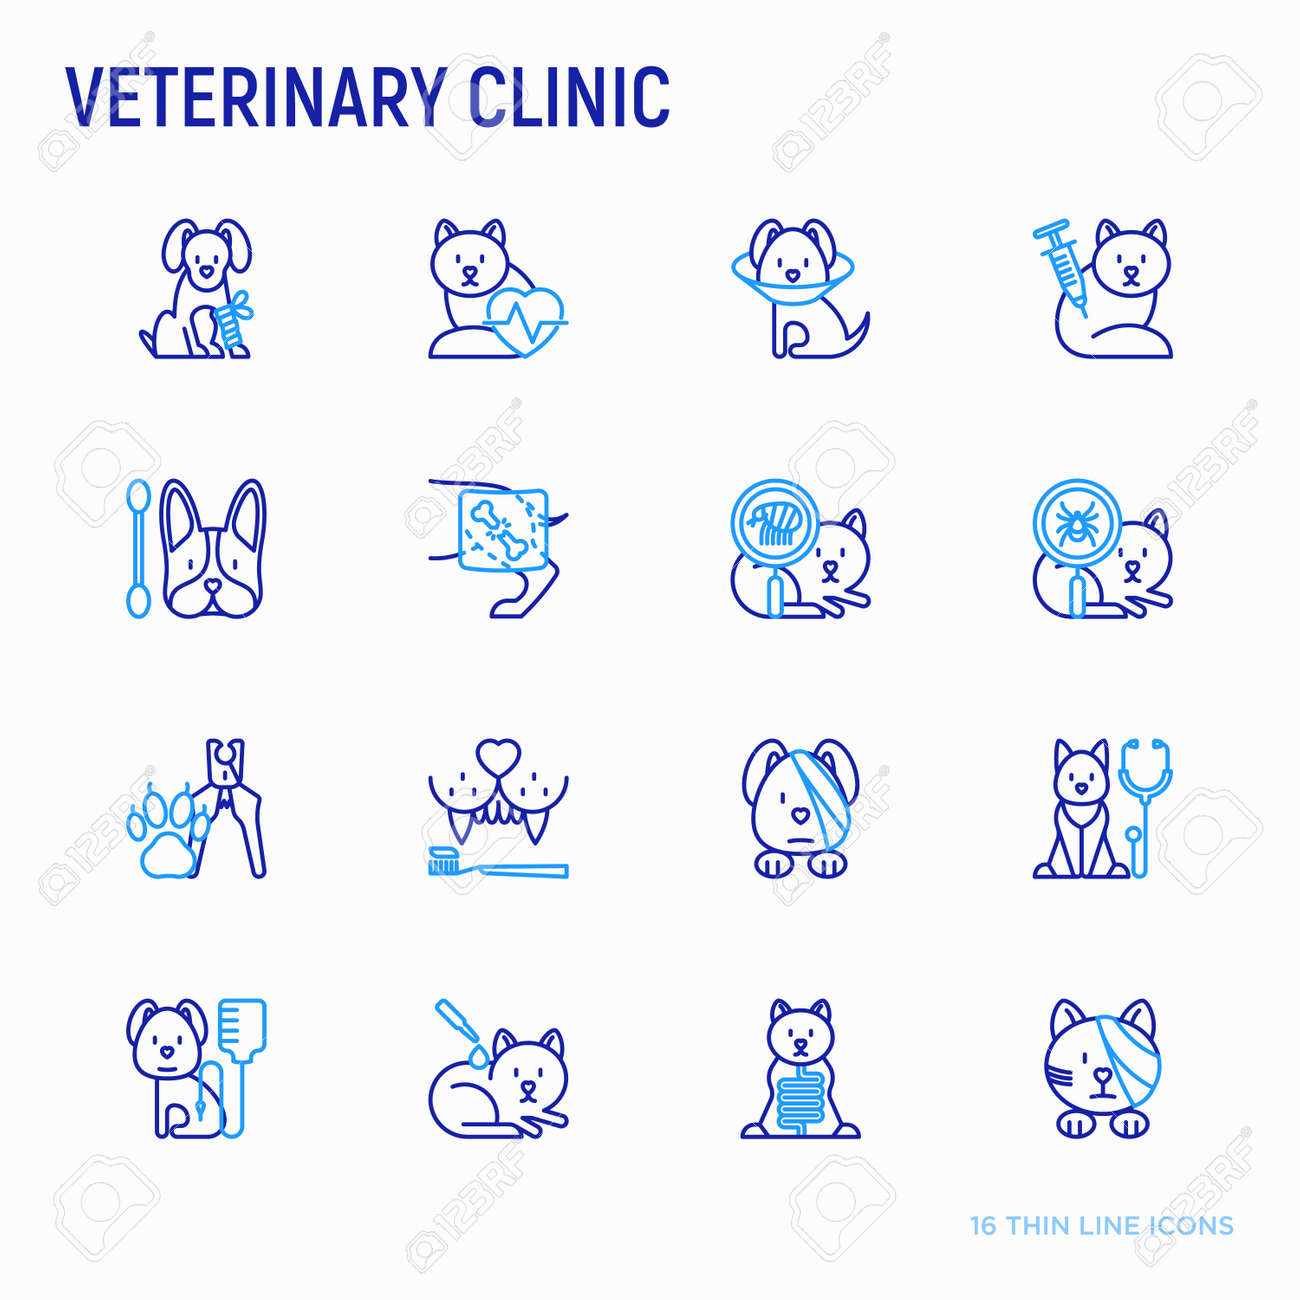 Veterinary clinic thin line icons set: broken leg, protective collar, injection, cardiology, cleaning of ears, teeth, shearing claws, bandage on eye, blood transfusion for dog. Vector illustration. - 112364942